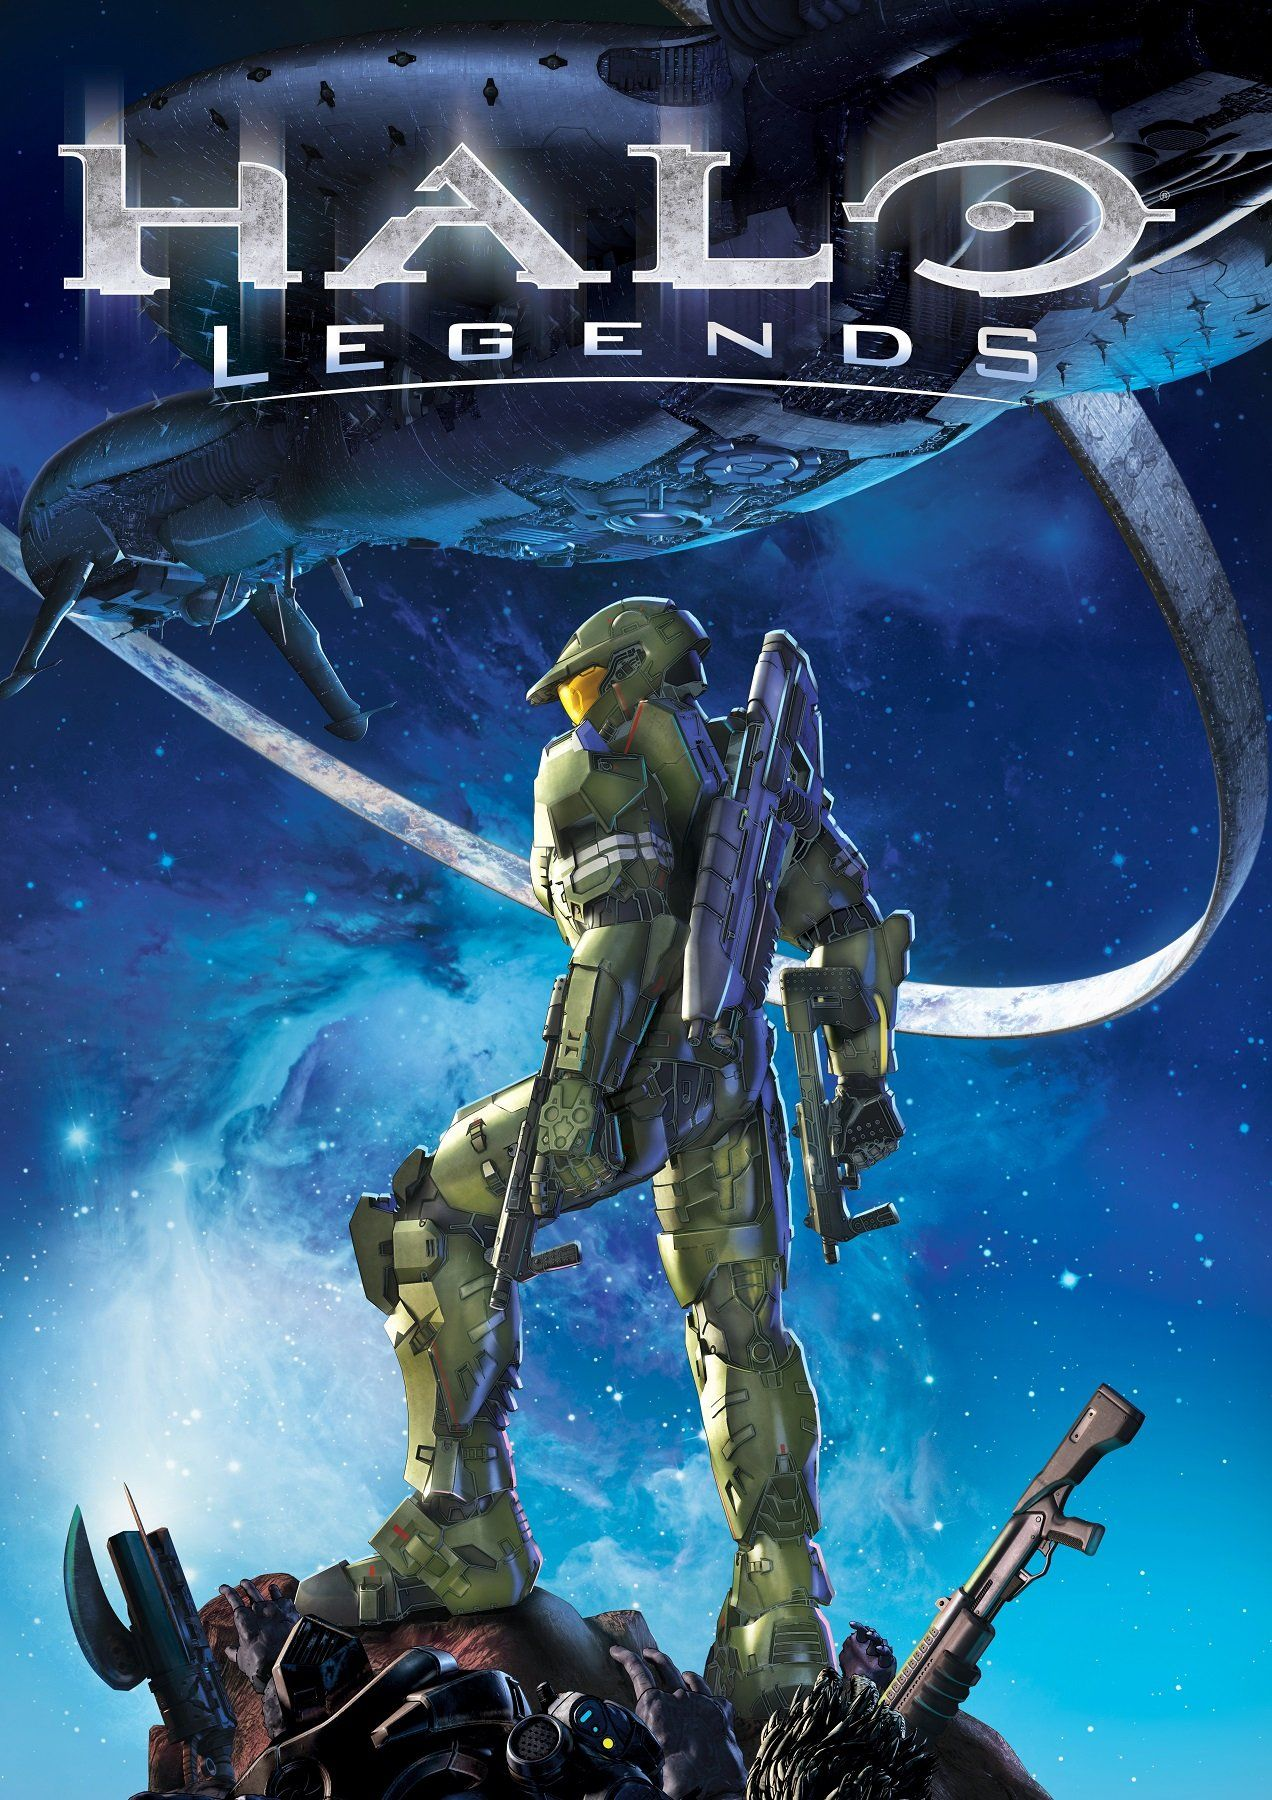 Halo legends poster halo animated movies animation film